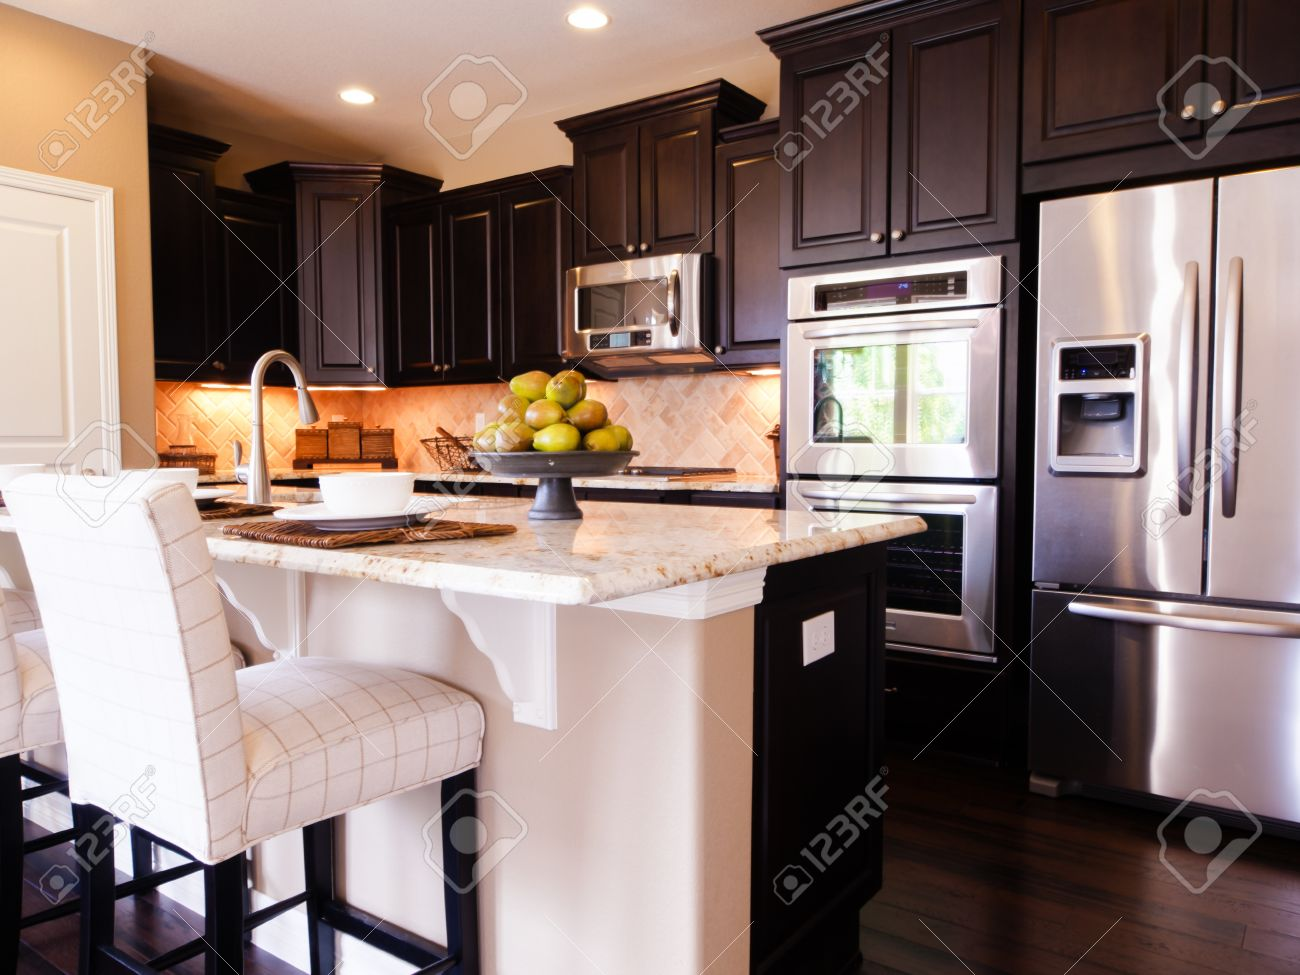 Modern Kitchen With Dark Wood Cabinets And Hardwood Floors. Stock Photo    15079365